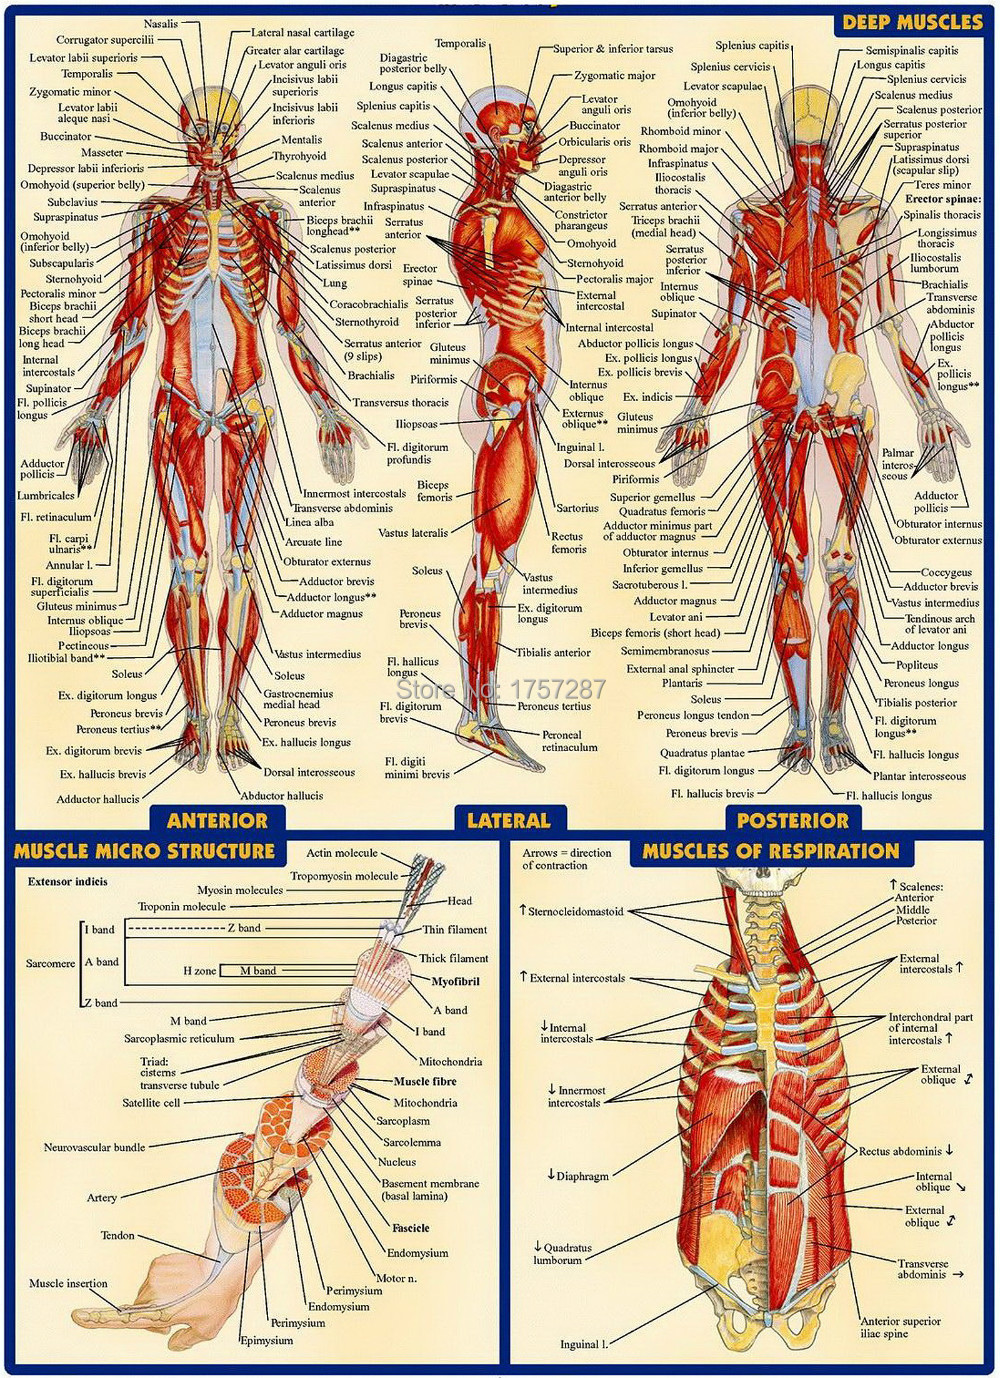 03 Human Anatomy All System Deep Muscles Map  14 U0026quot X19 U0026quot  Inch  Poster